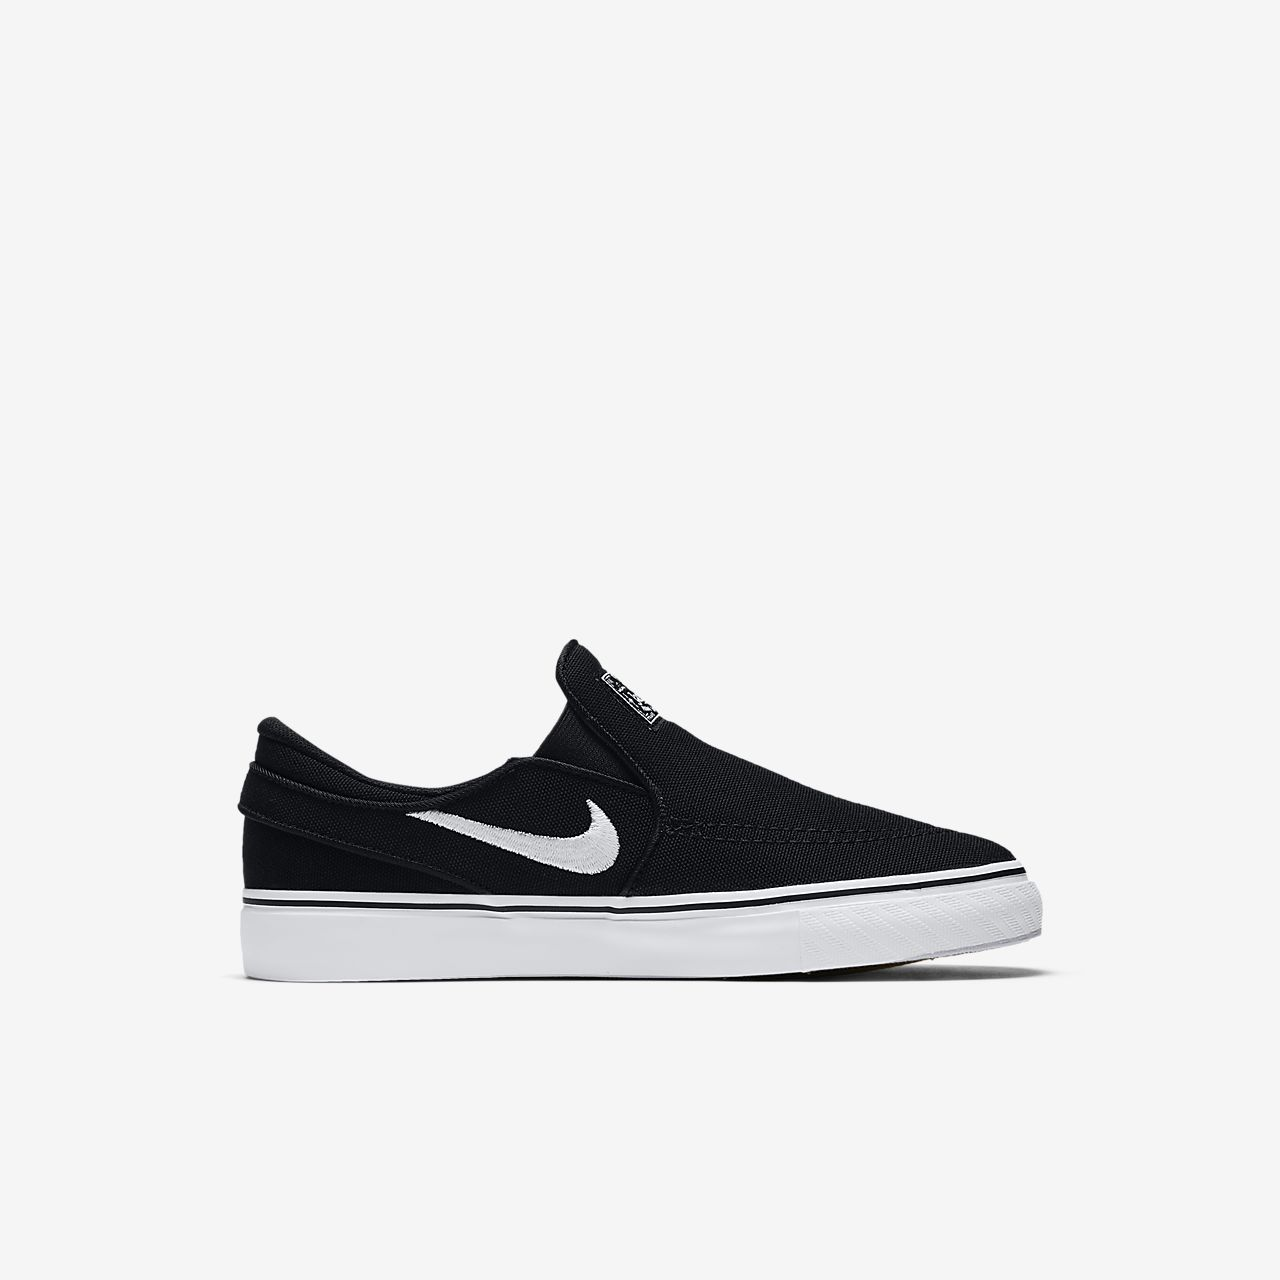 ... Nike SB Stefan Janoski Canvas Slip-on Little Kids' Skateboarding Shoe